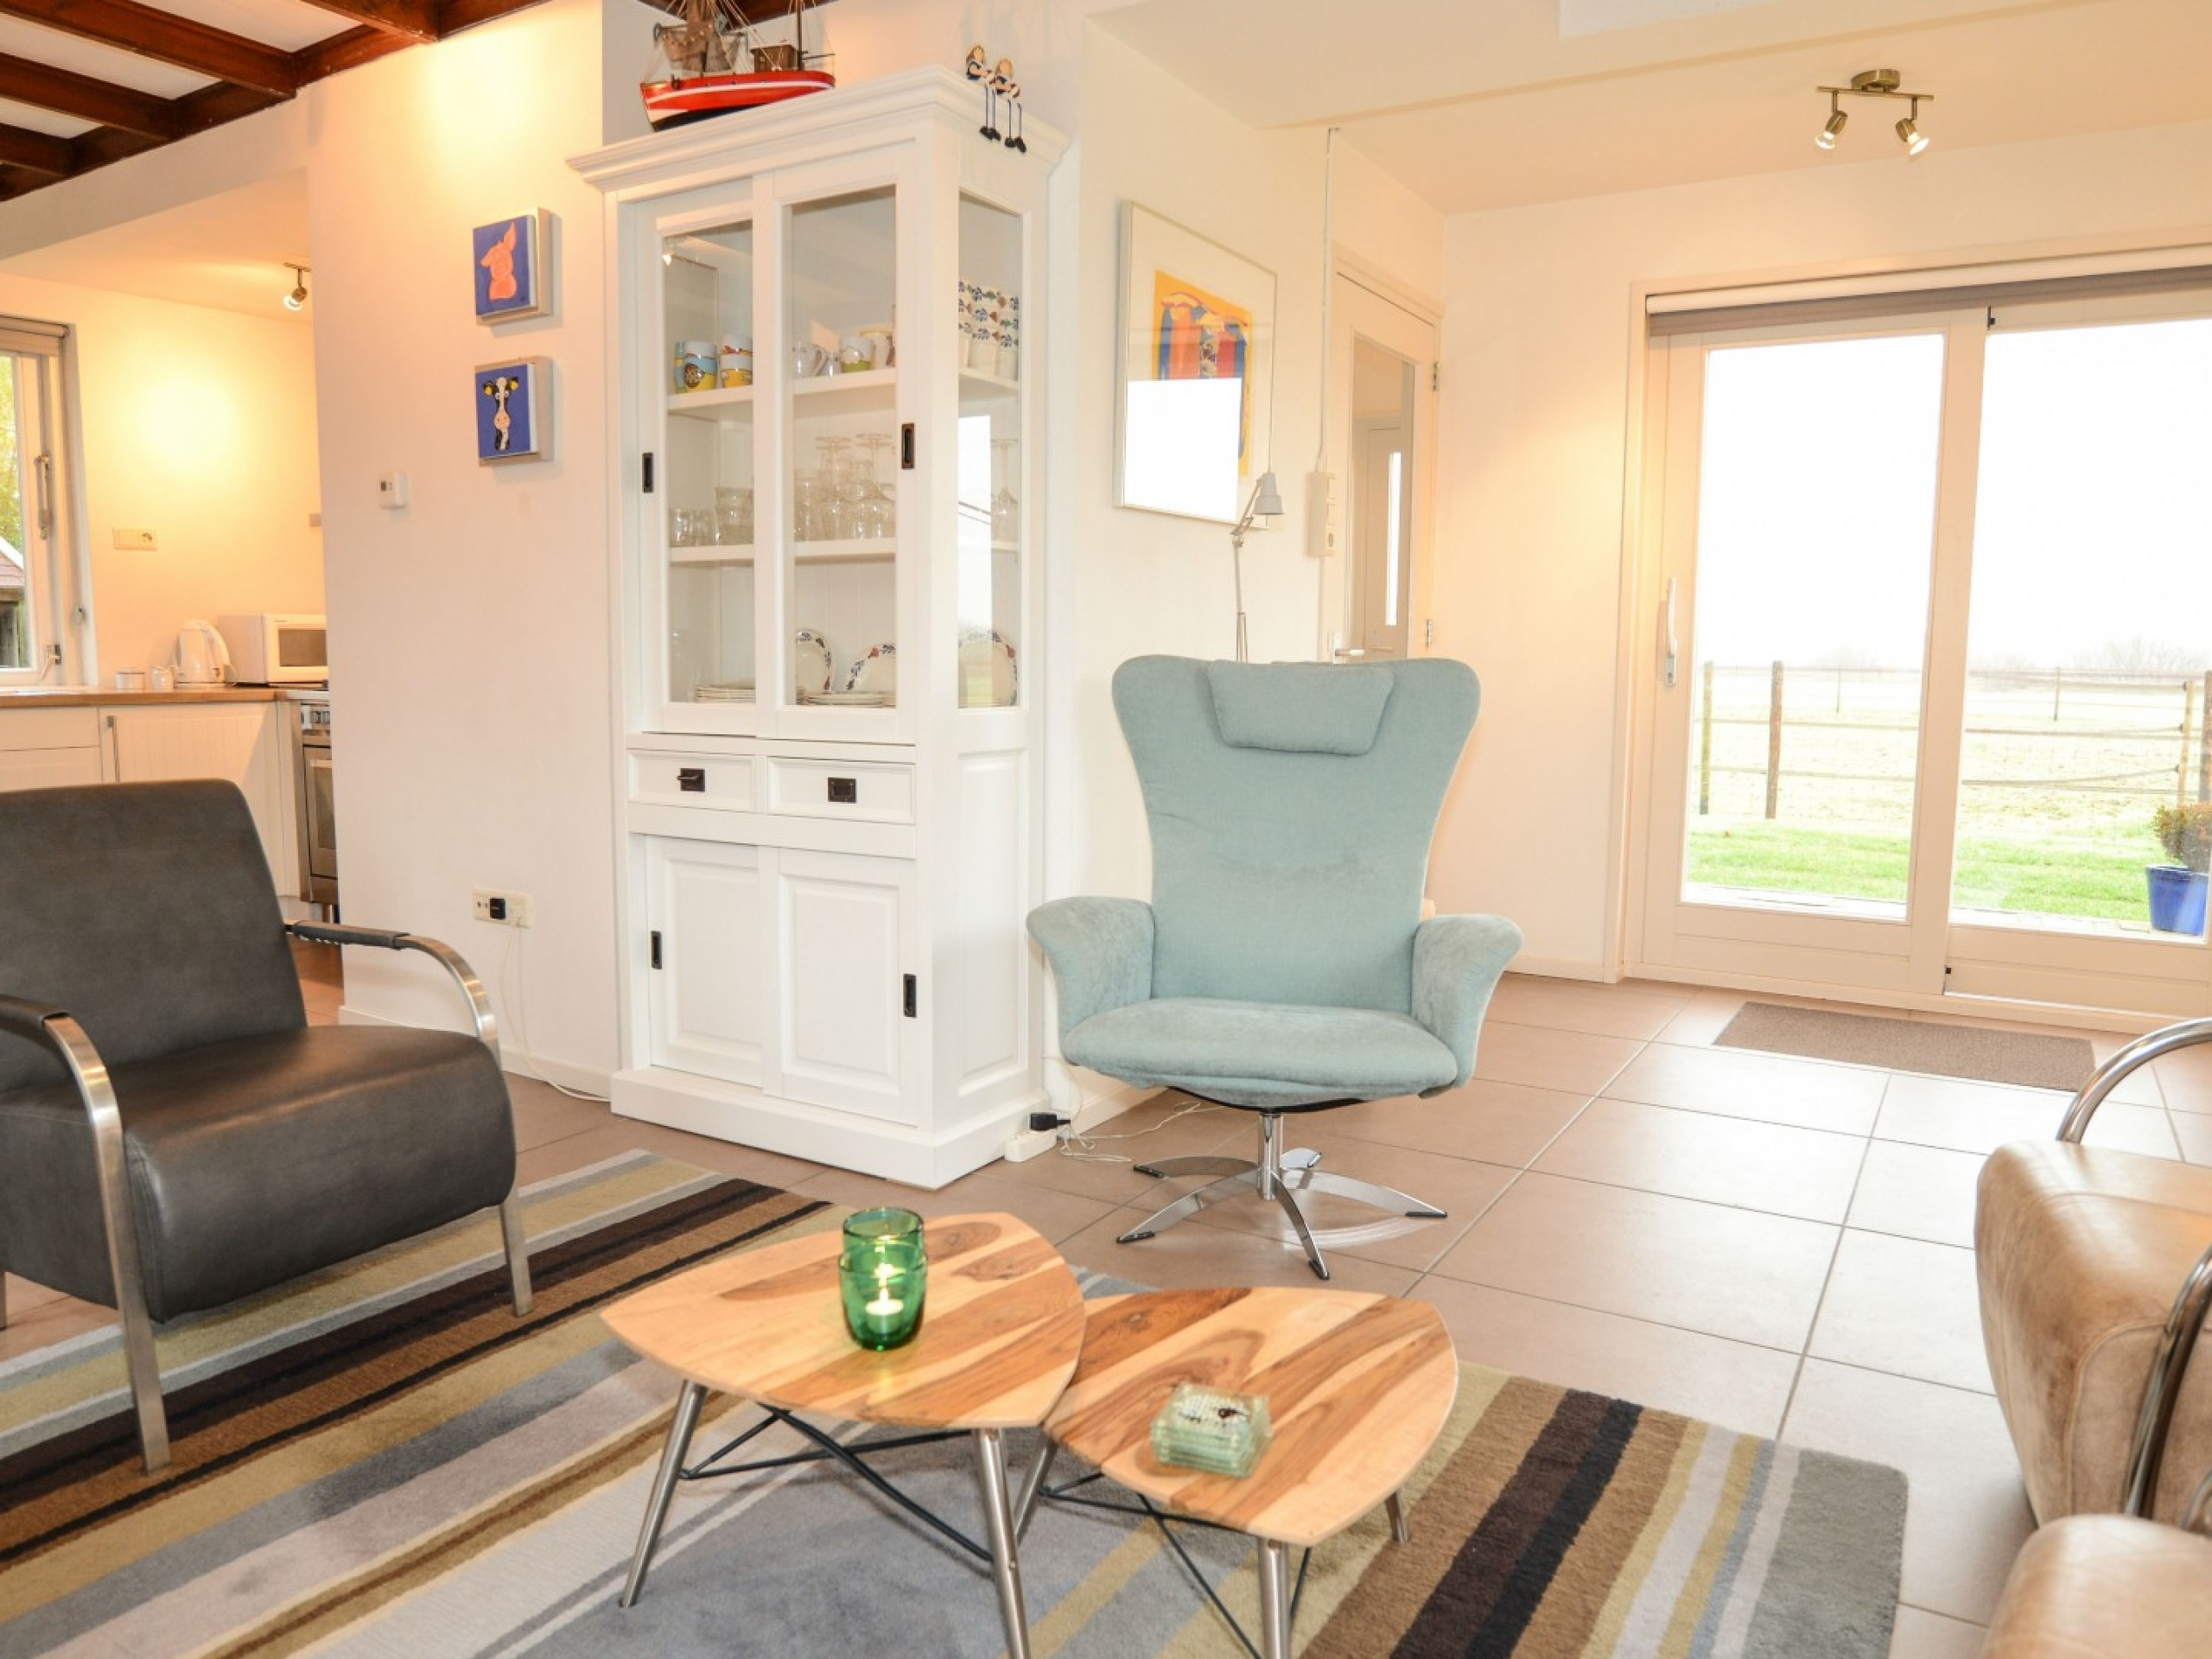 Tastefully furnished holiday home with panoramic views on the outskirts of Den Burg